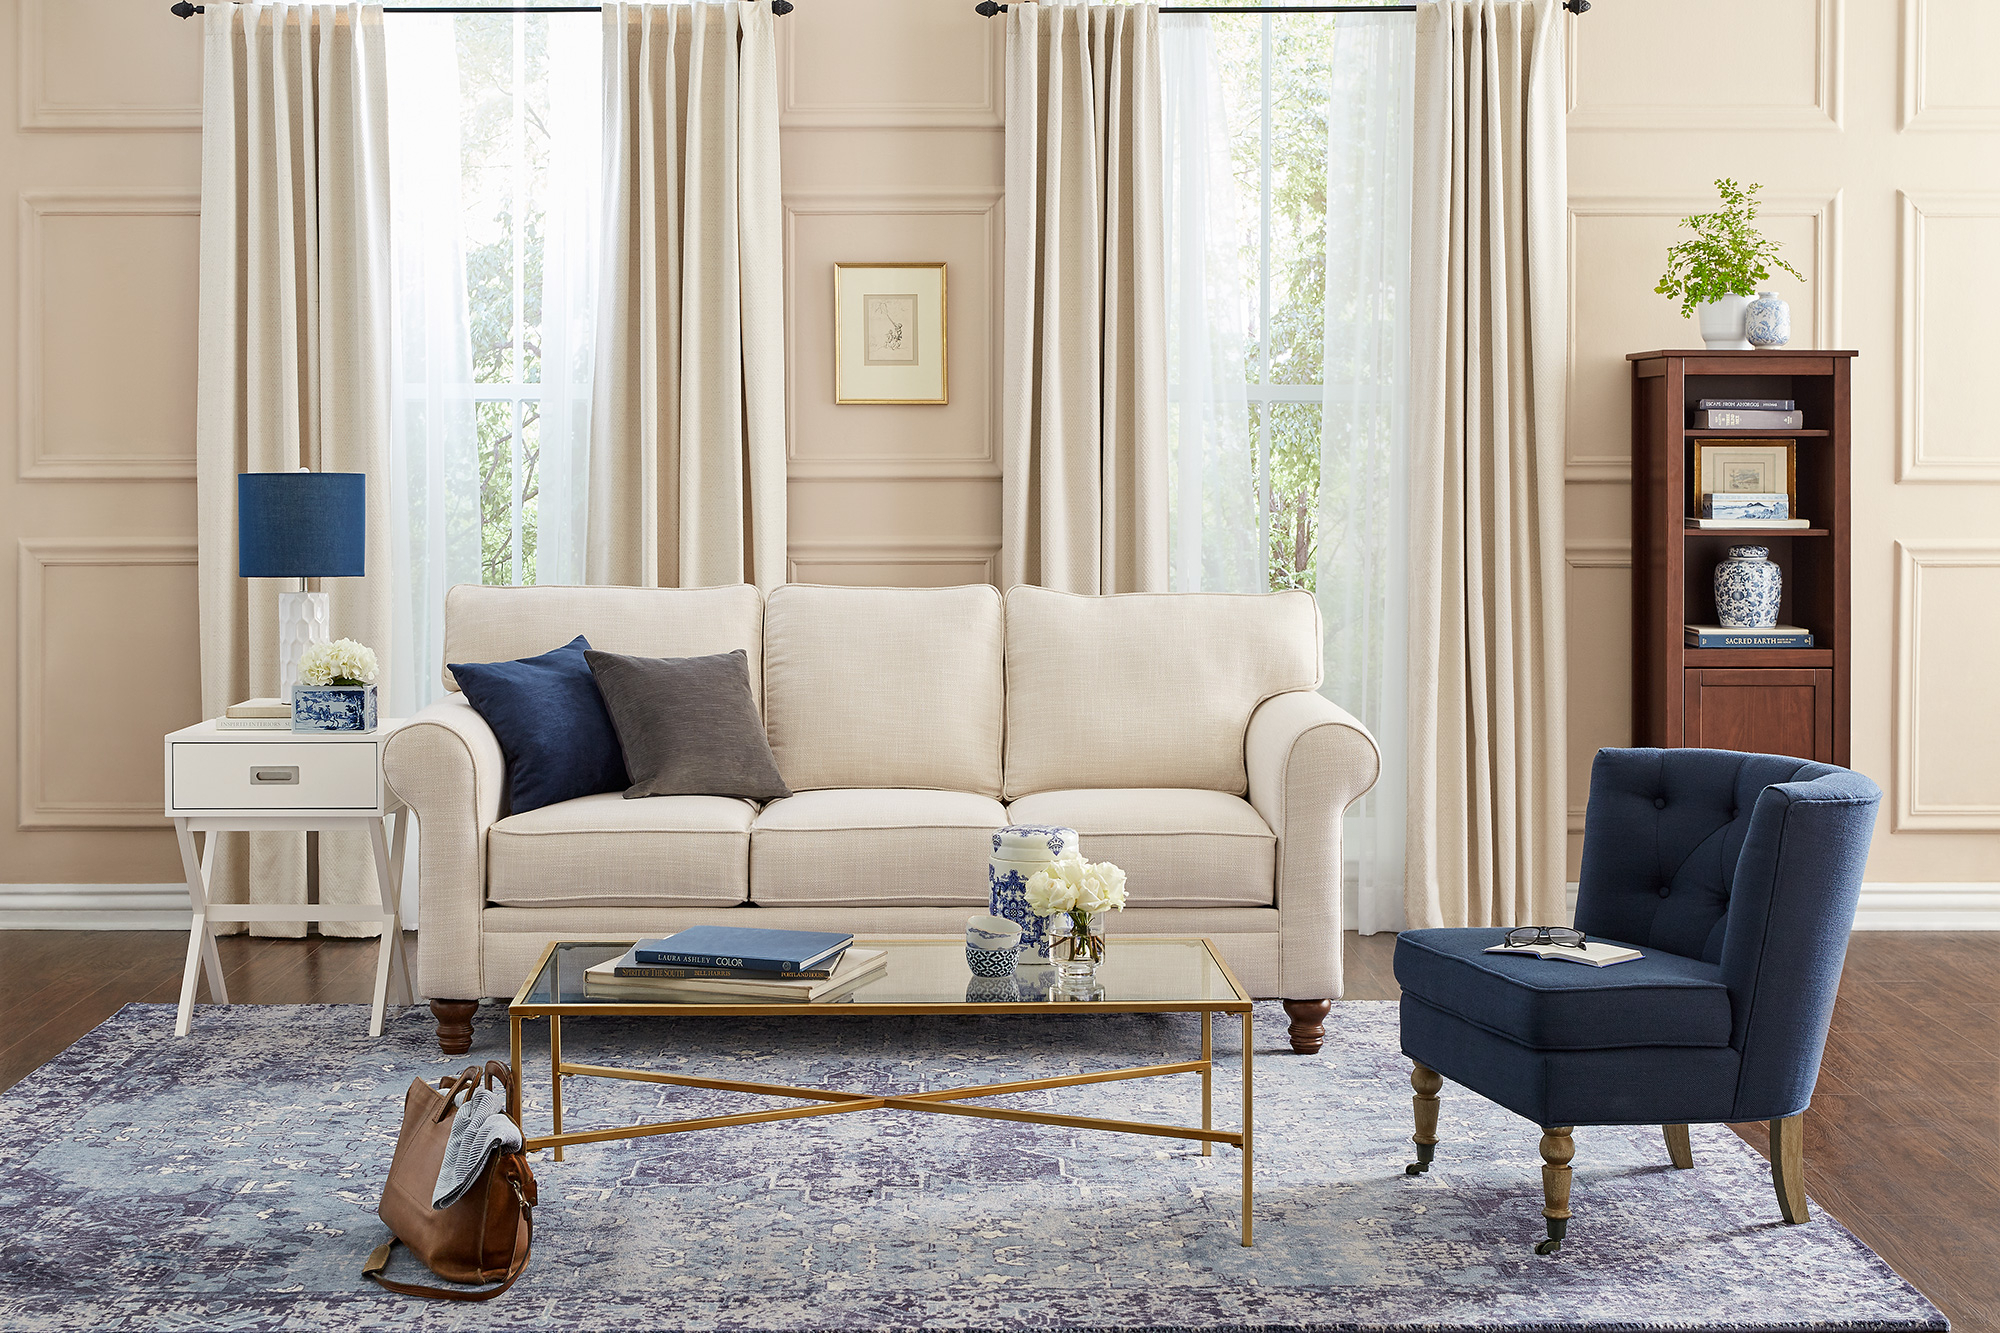 New Seasonal Sales Are Here! 44% Off Deville Russelle Sideboard Intended For Deville Russelle Sideboards (View 22 of 30)